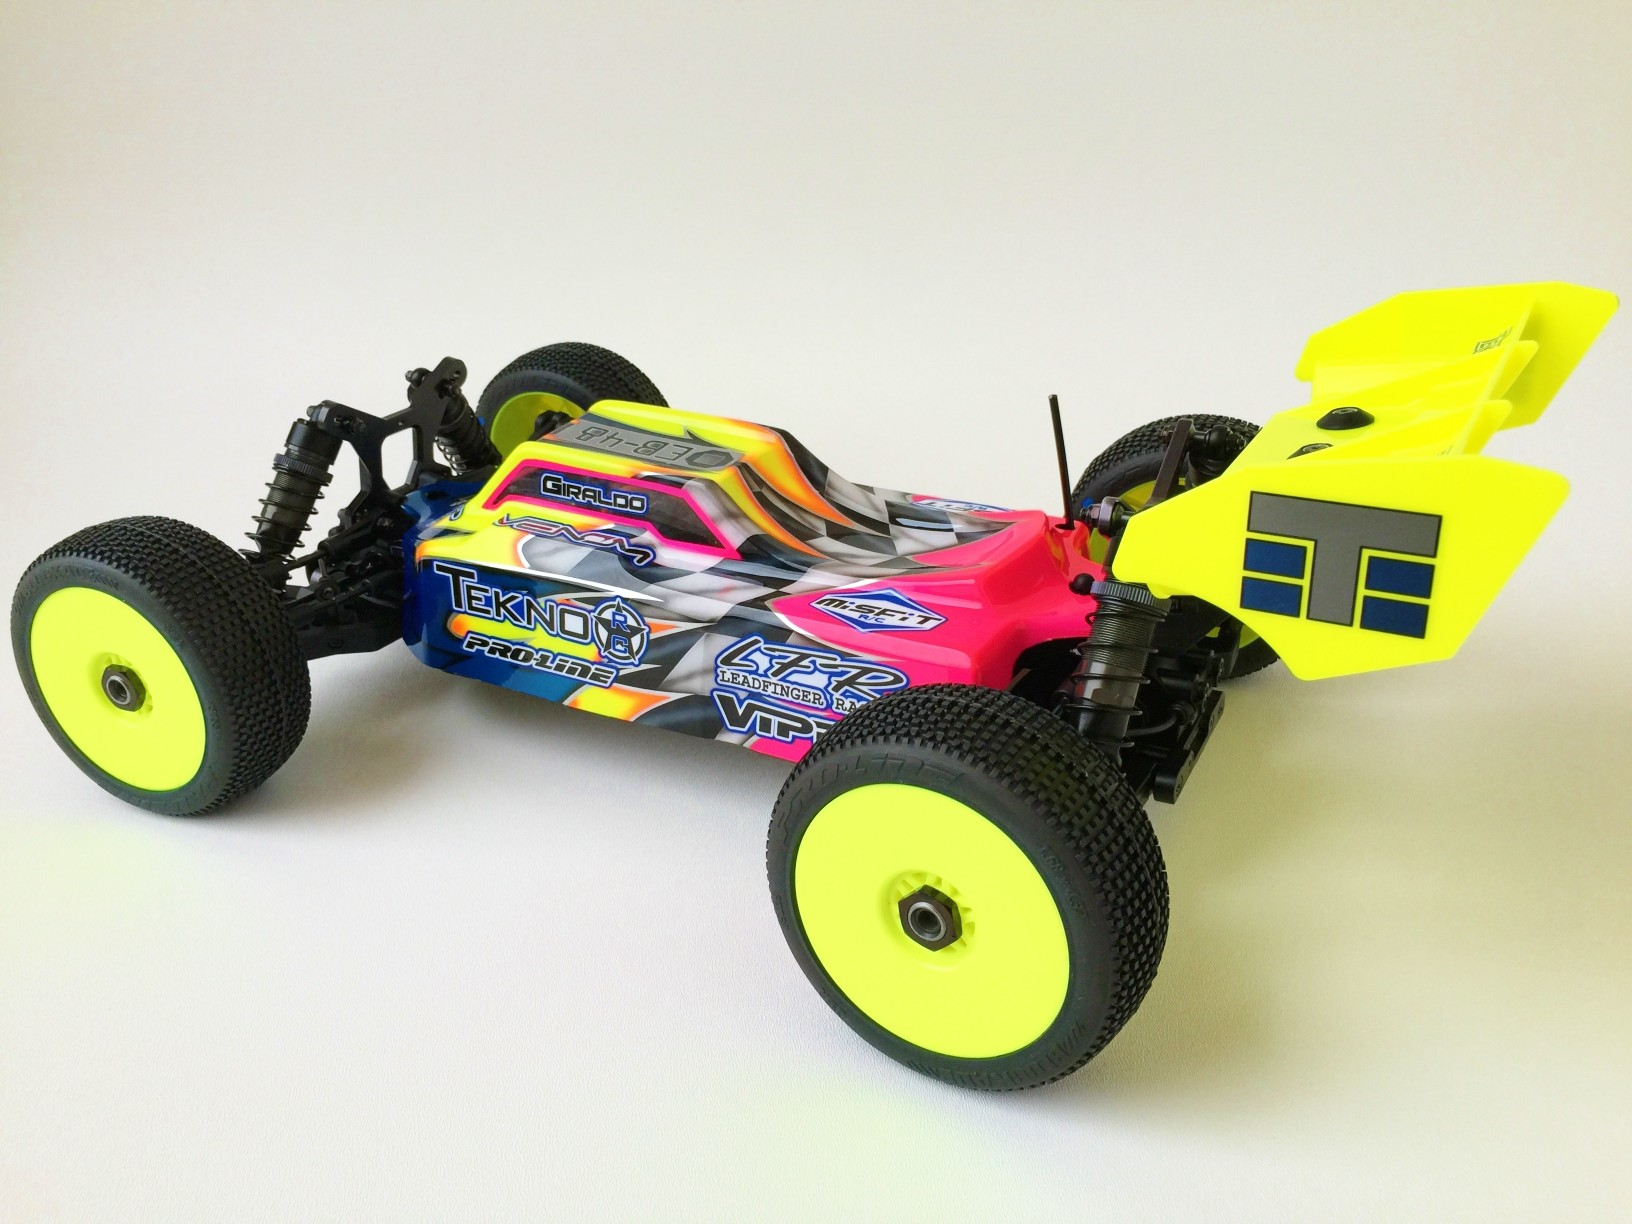 Leadfinger LFR Assassin body (clear) for Tekno EB48-EB48.4 electric buggy